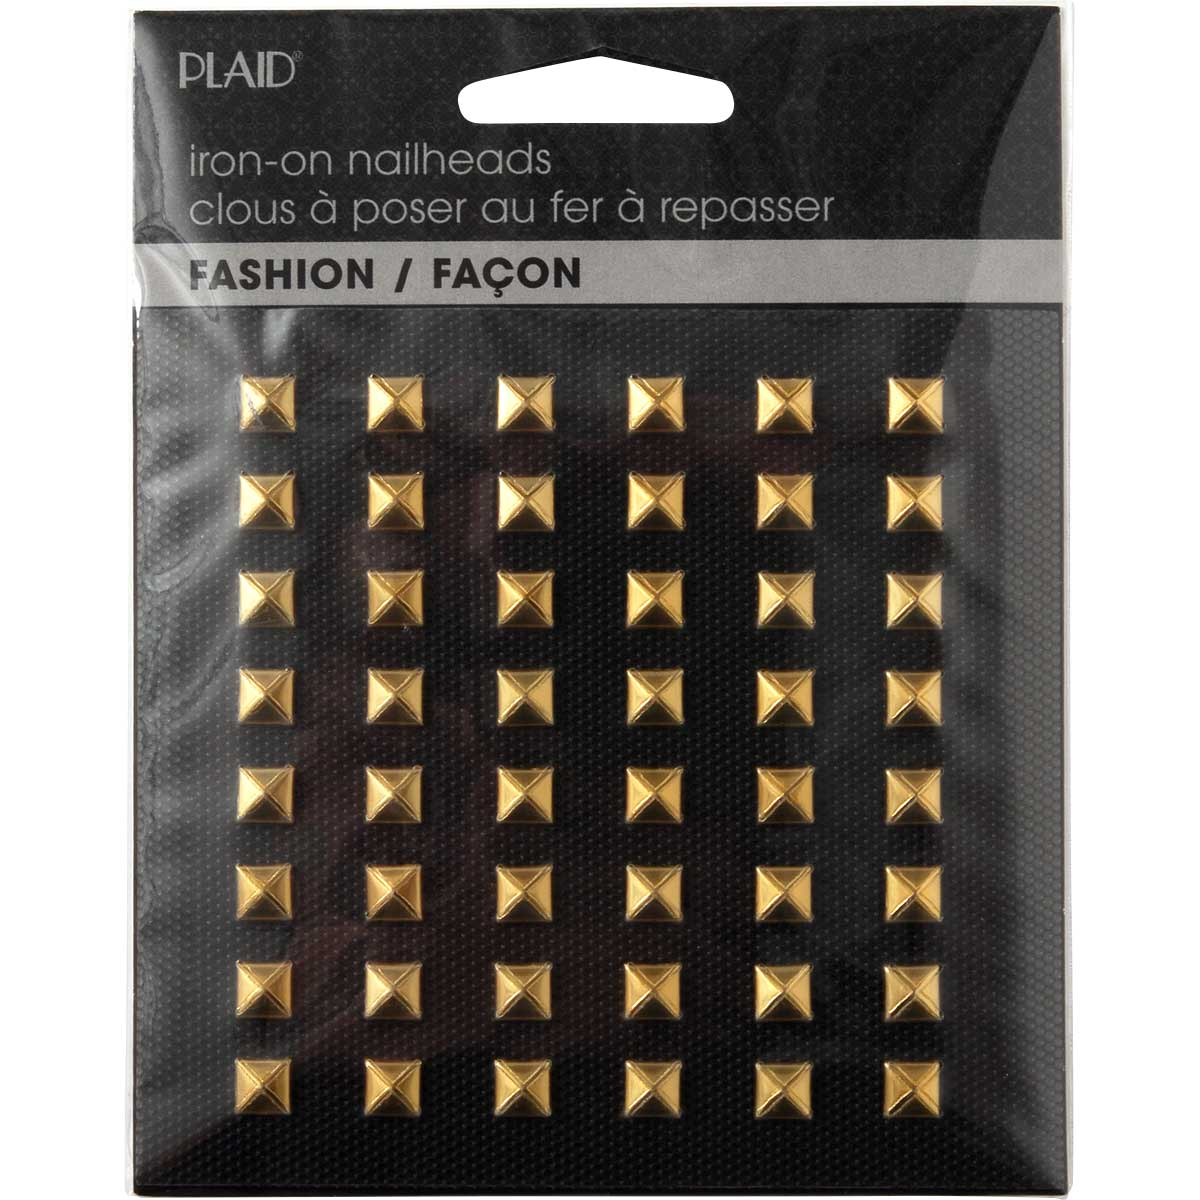 Plaid ® Hot Fix Nailhead Iron-Ons - Pyramid Shiny Gold - 71032